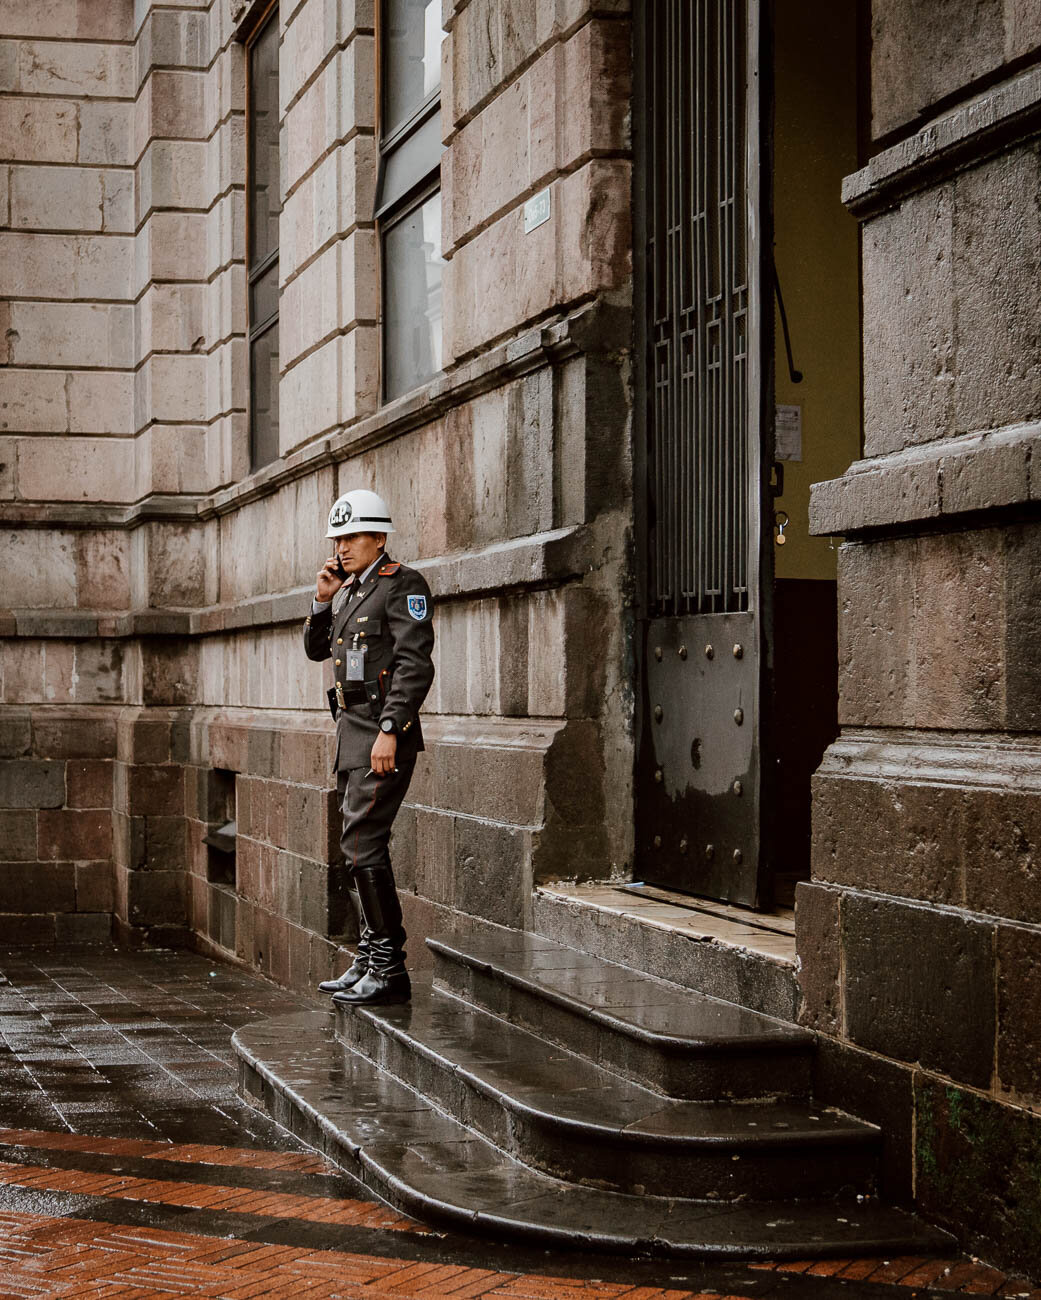 Things to do in Quito - Explore the old town - Soldier in Front of Government Building